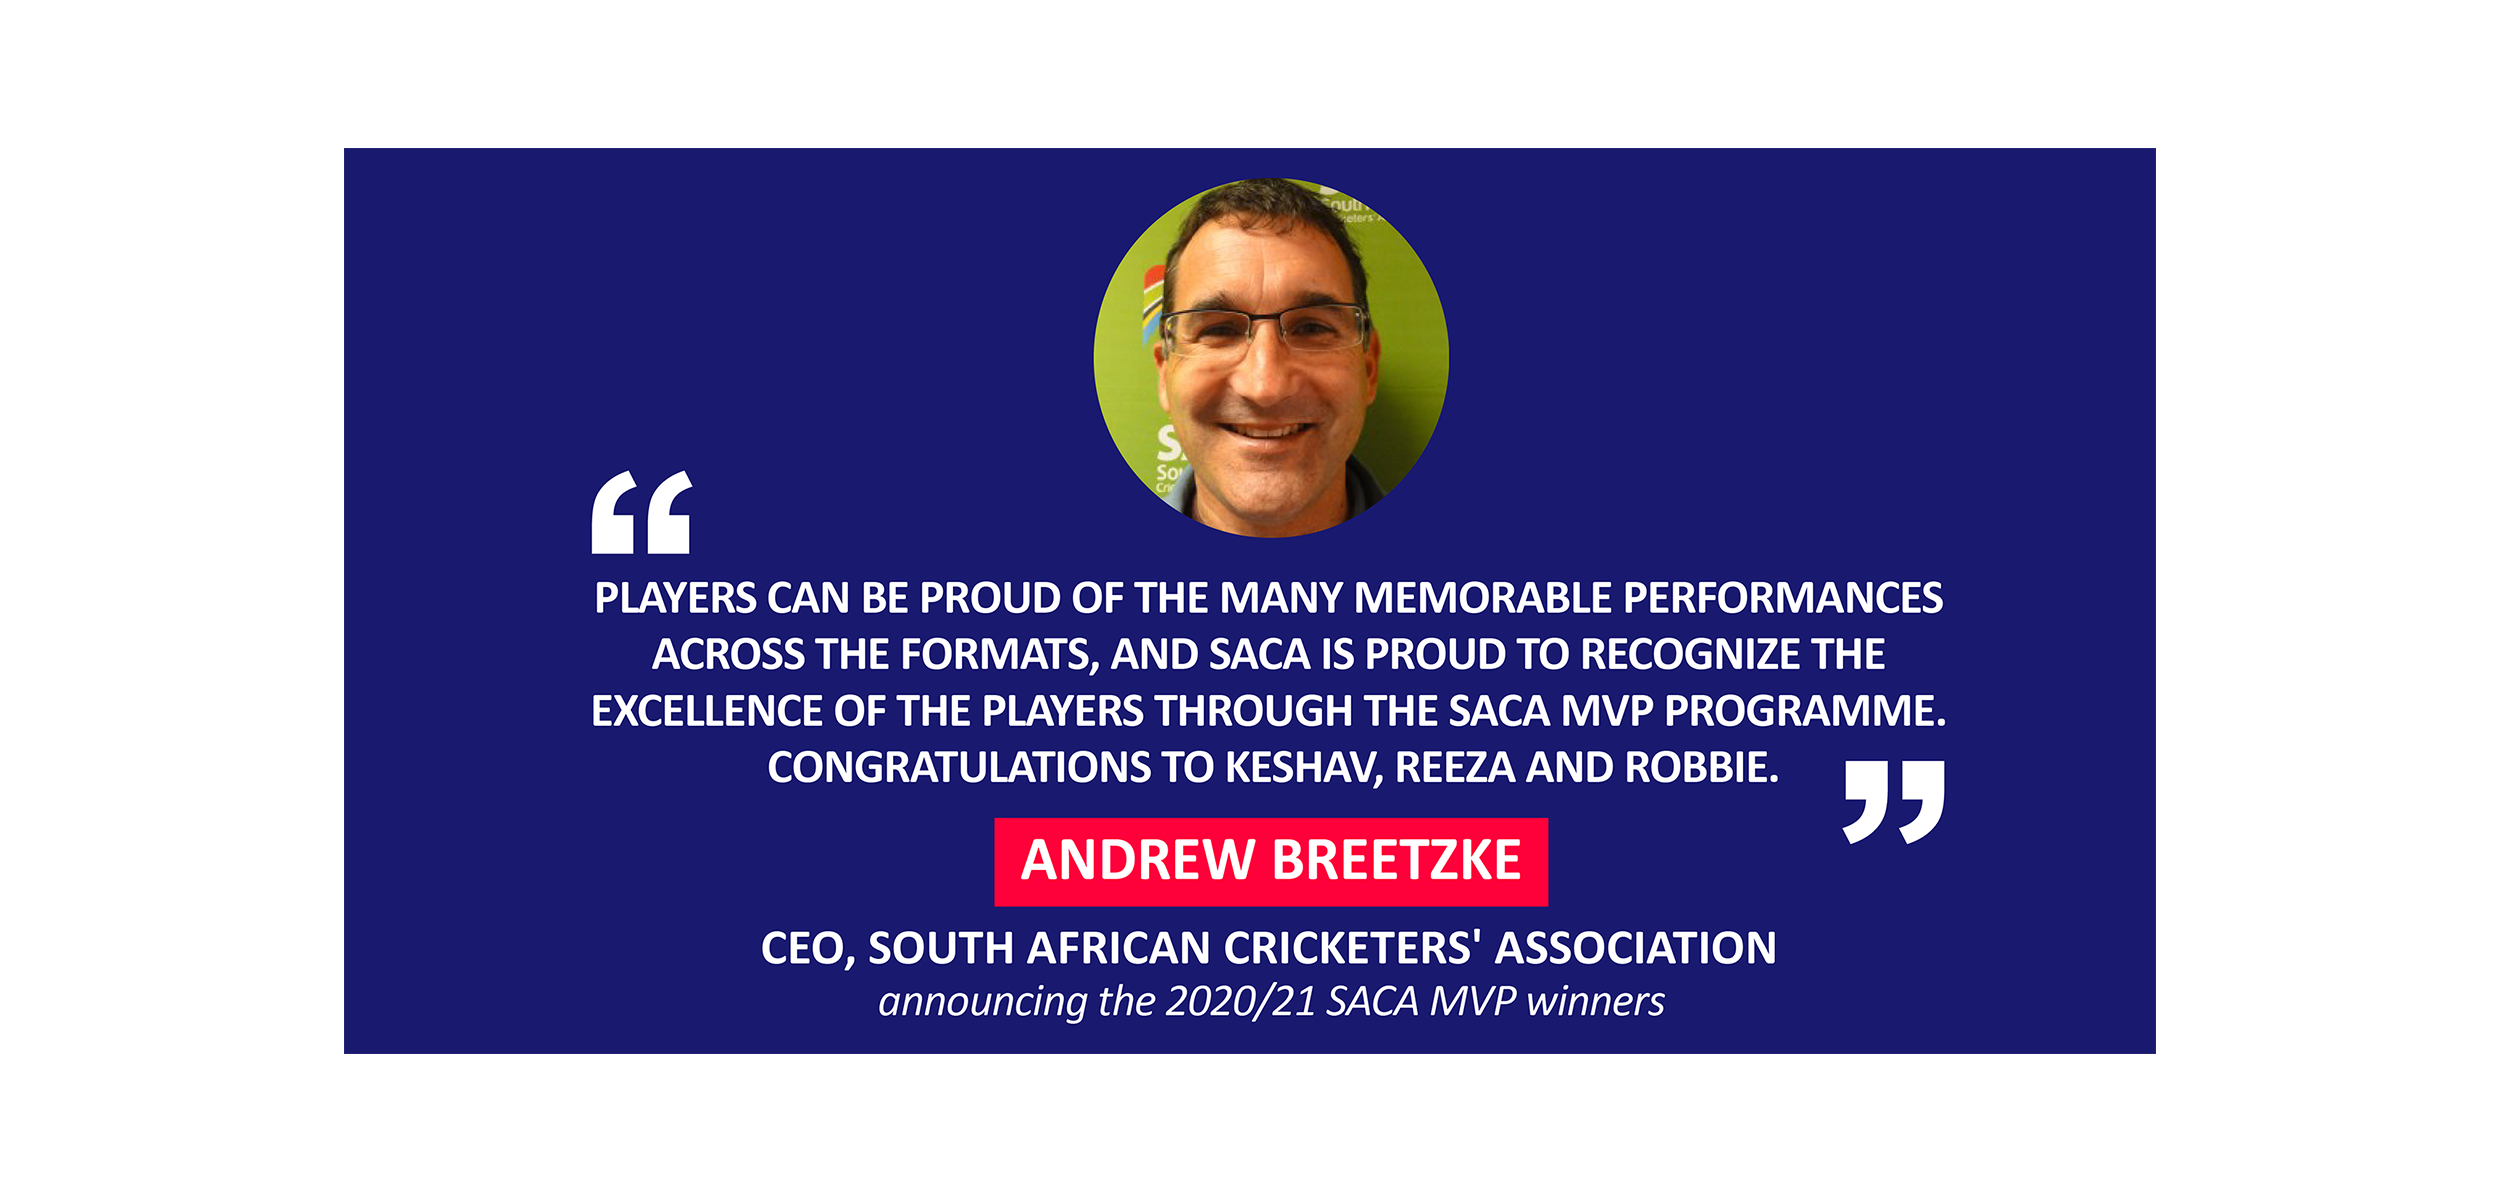 Andrew Breetzke, CEO, South African Cricketers' Association announcing the 2020/21 SACA MVP winners